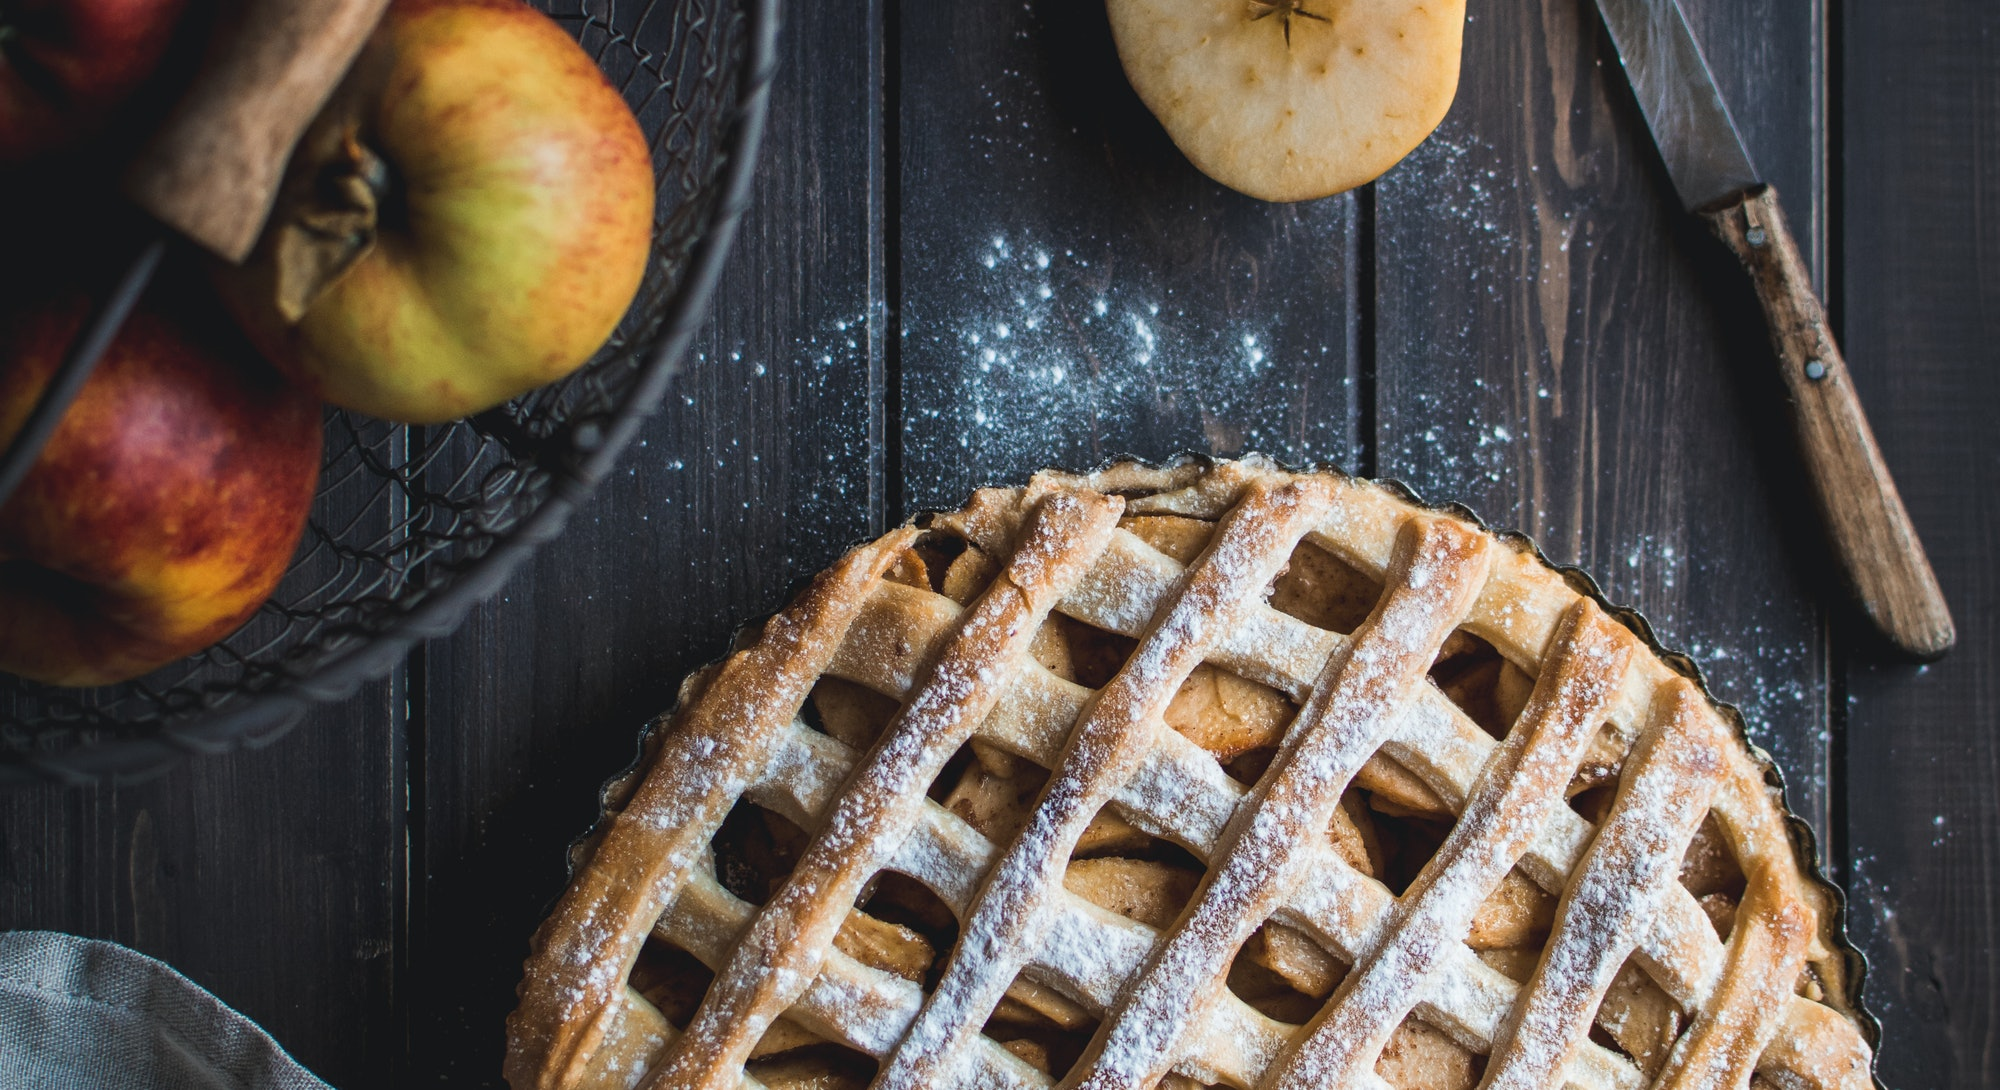 Apple recipes like classic apple pie are perfect for fall.